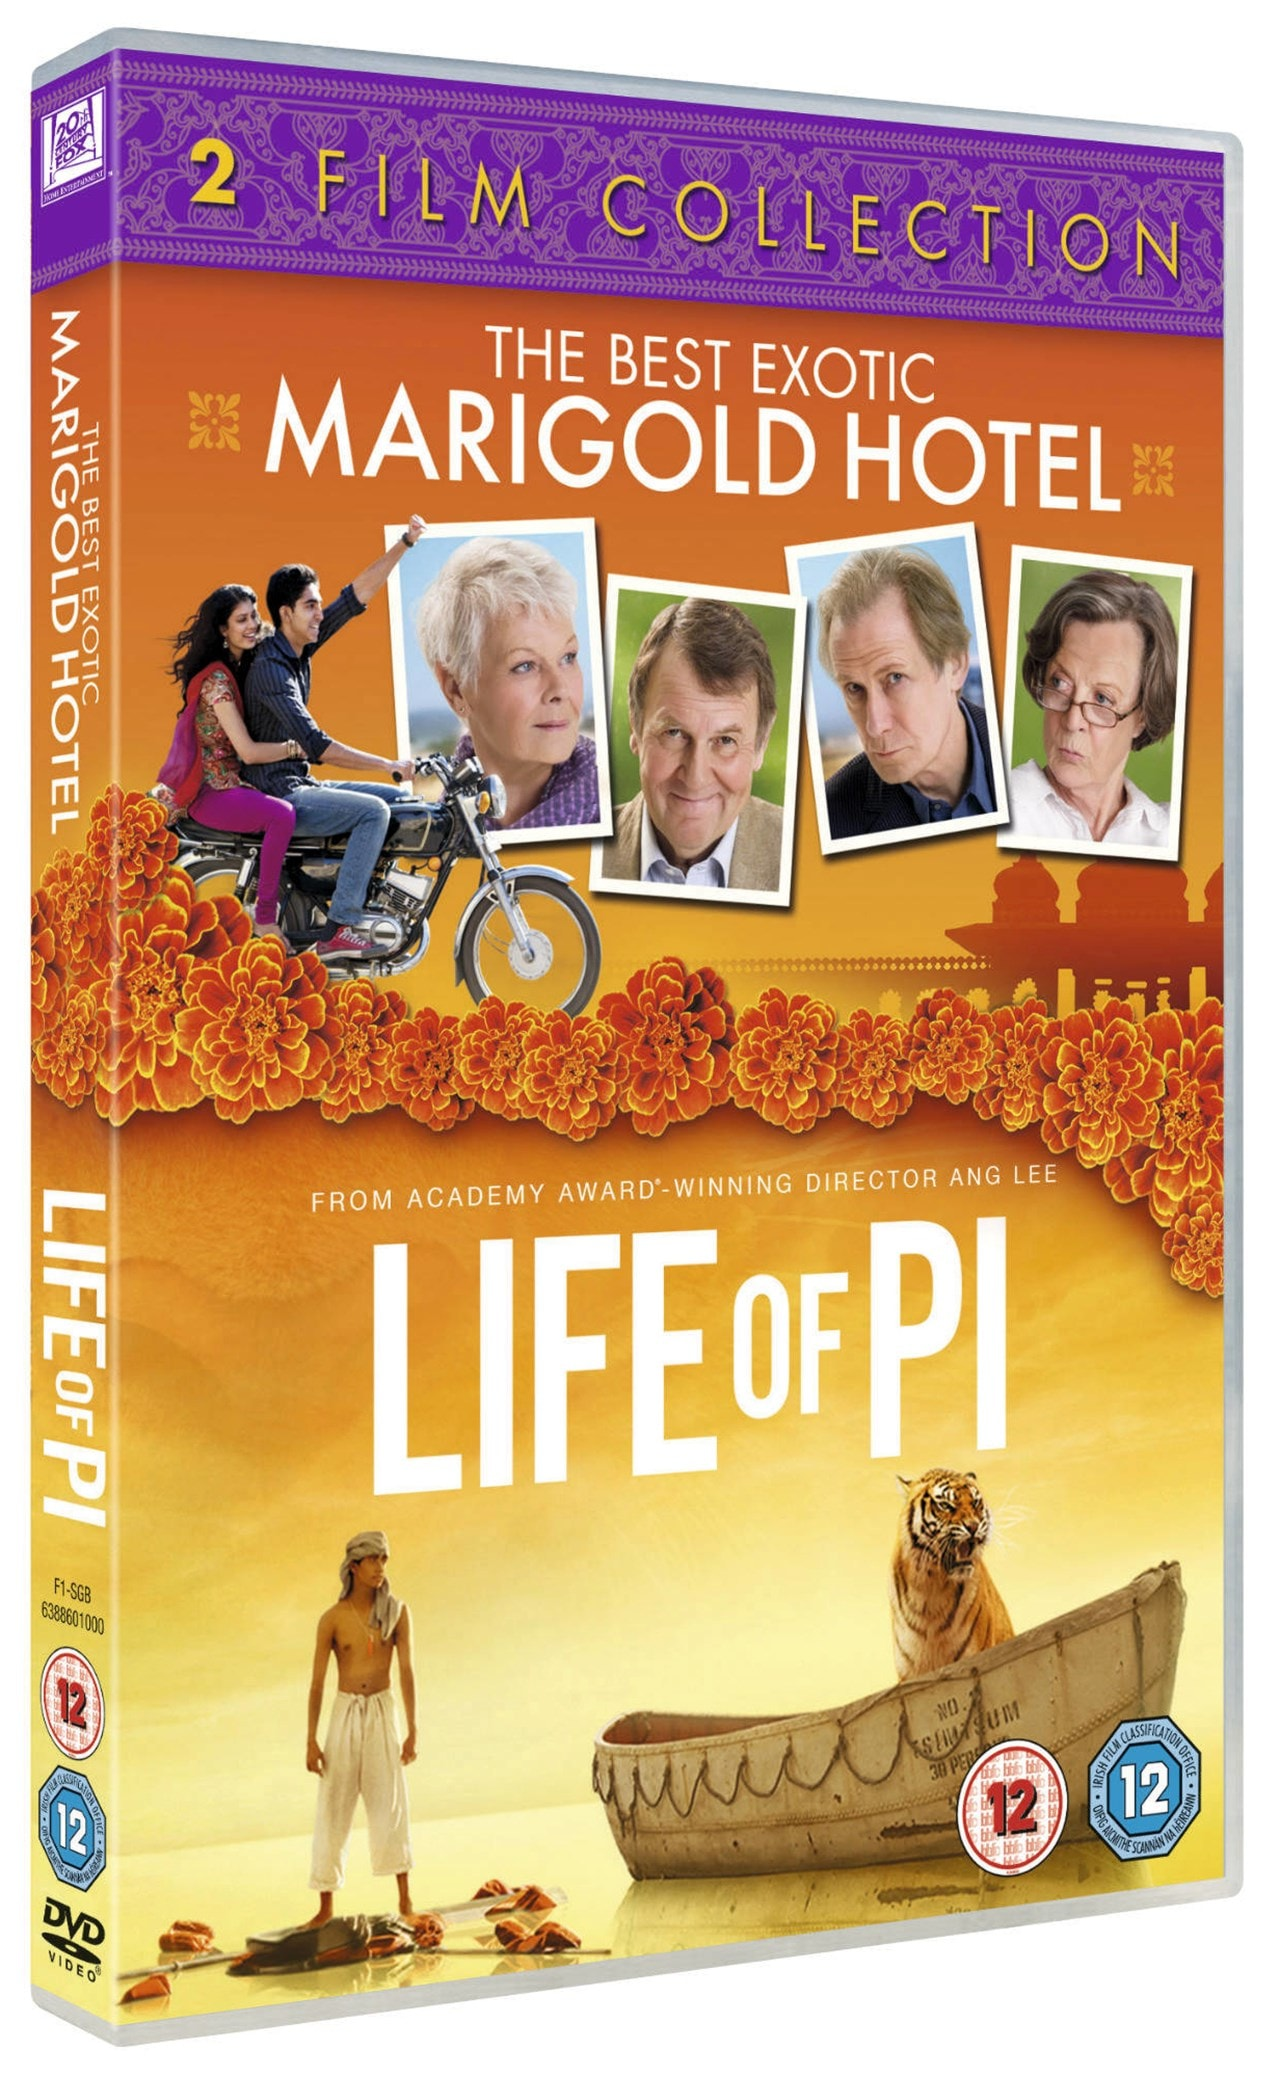 The Best Exotic Marigold Hotel/Life of Pi - 2